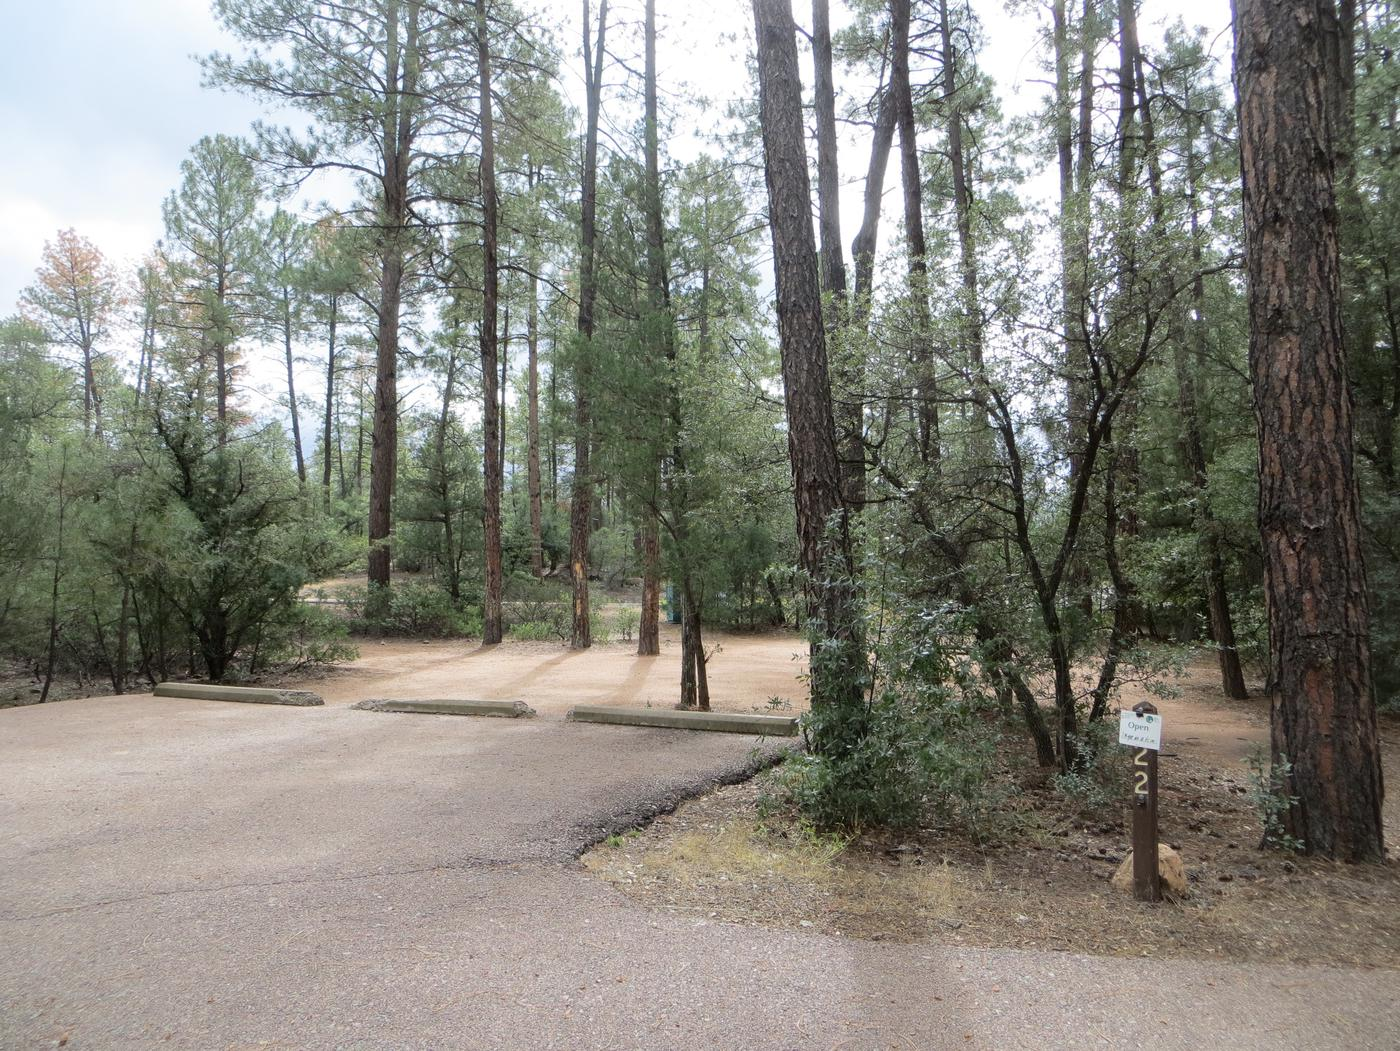 Houston Mesa, Black Bear Loop site #22 featuring parking and entrance to the wooded site.